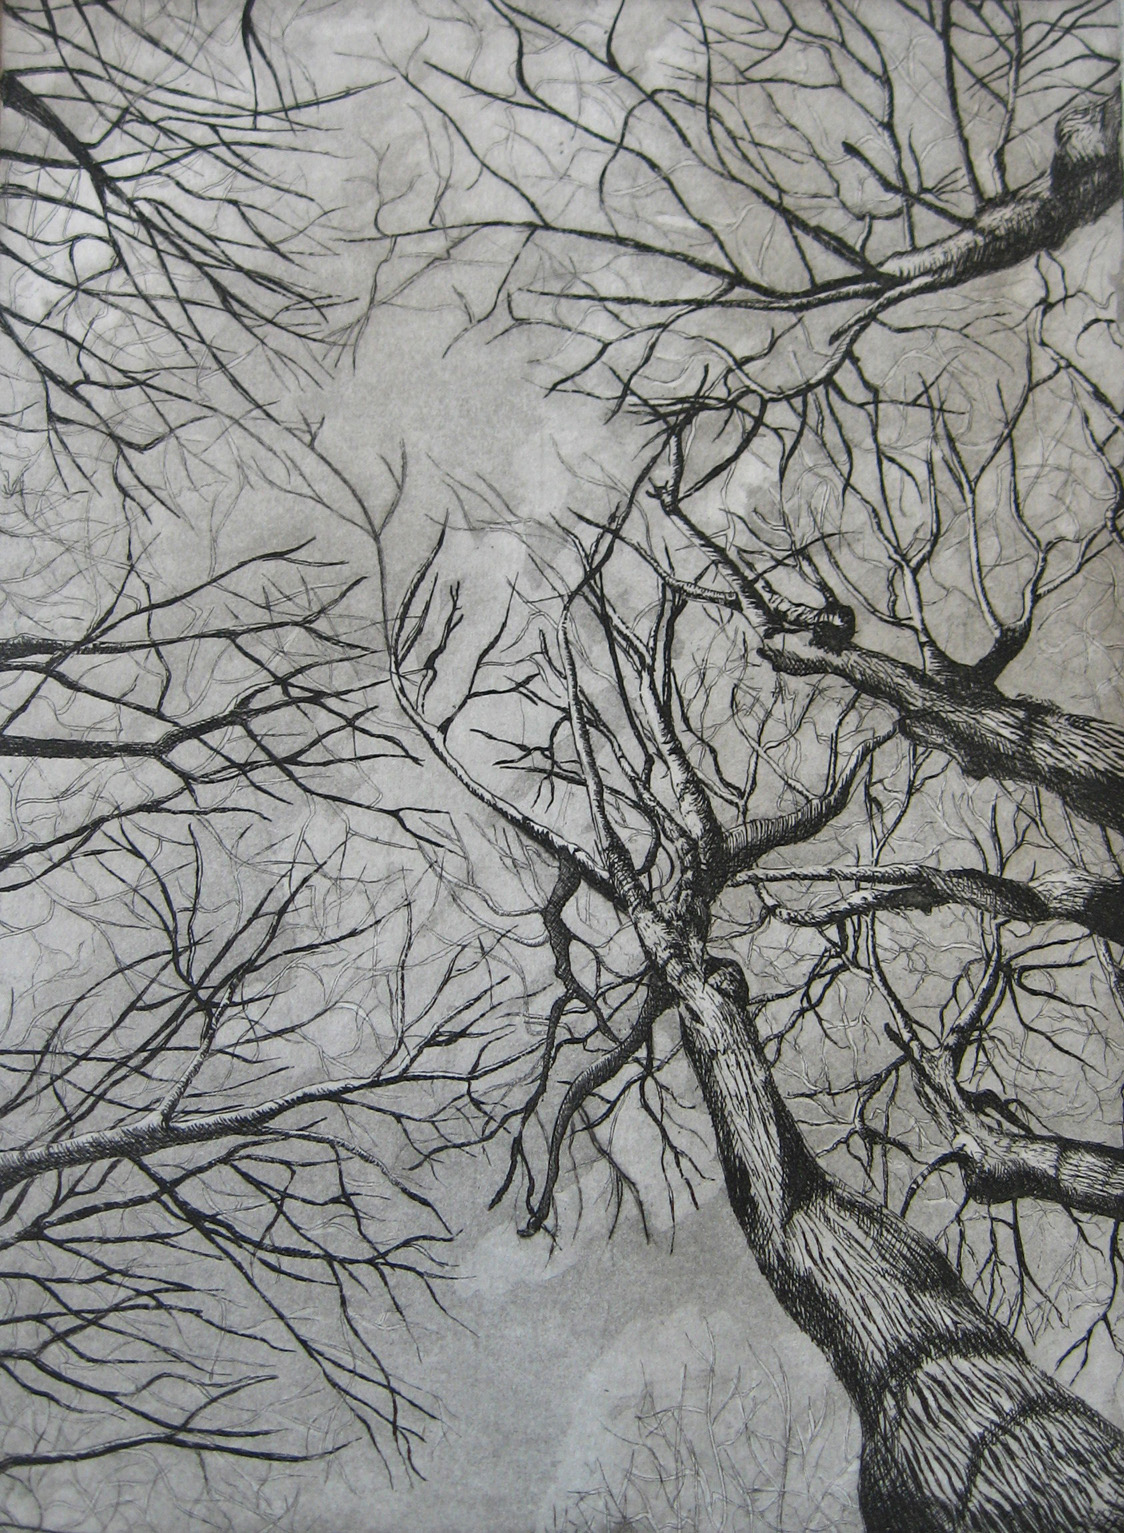 Taborda_View from Below_12x9_Etching Aquatint.jpg